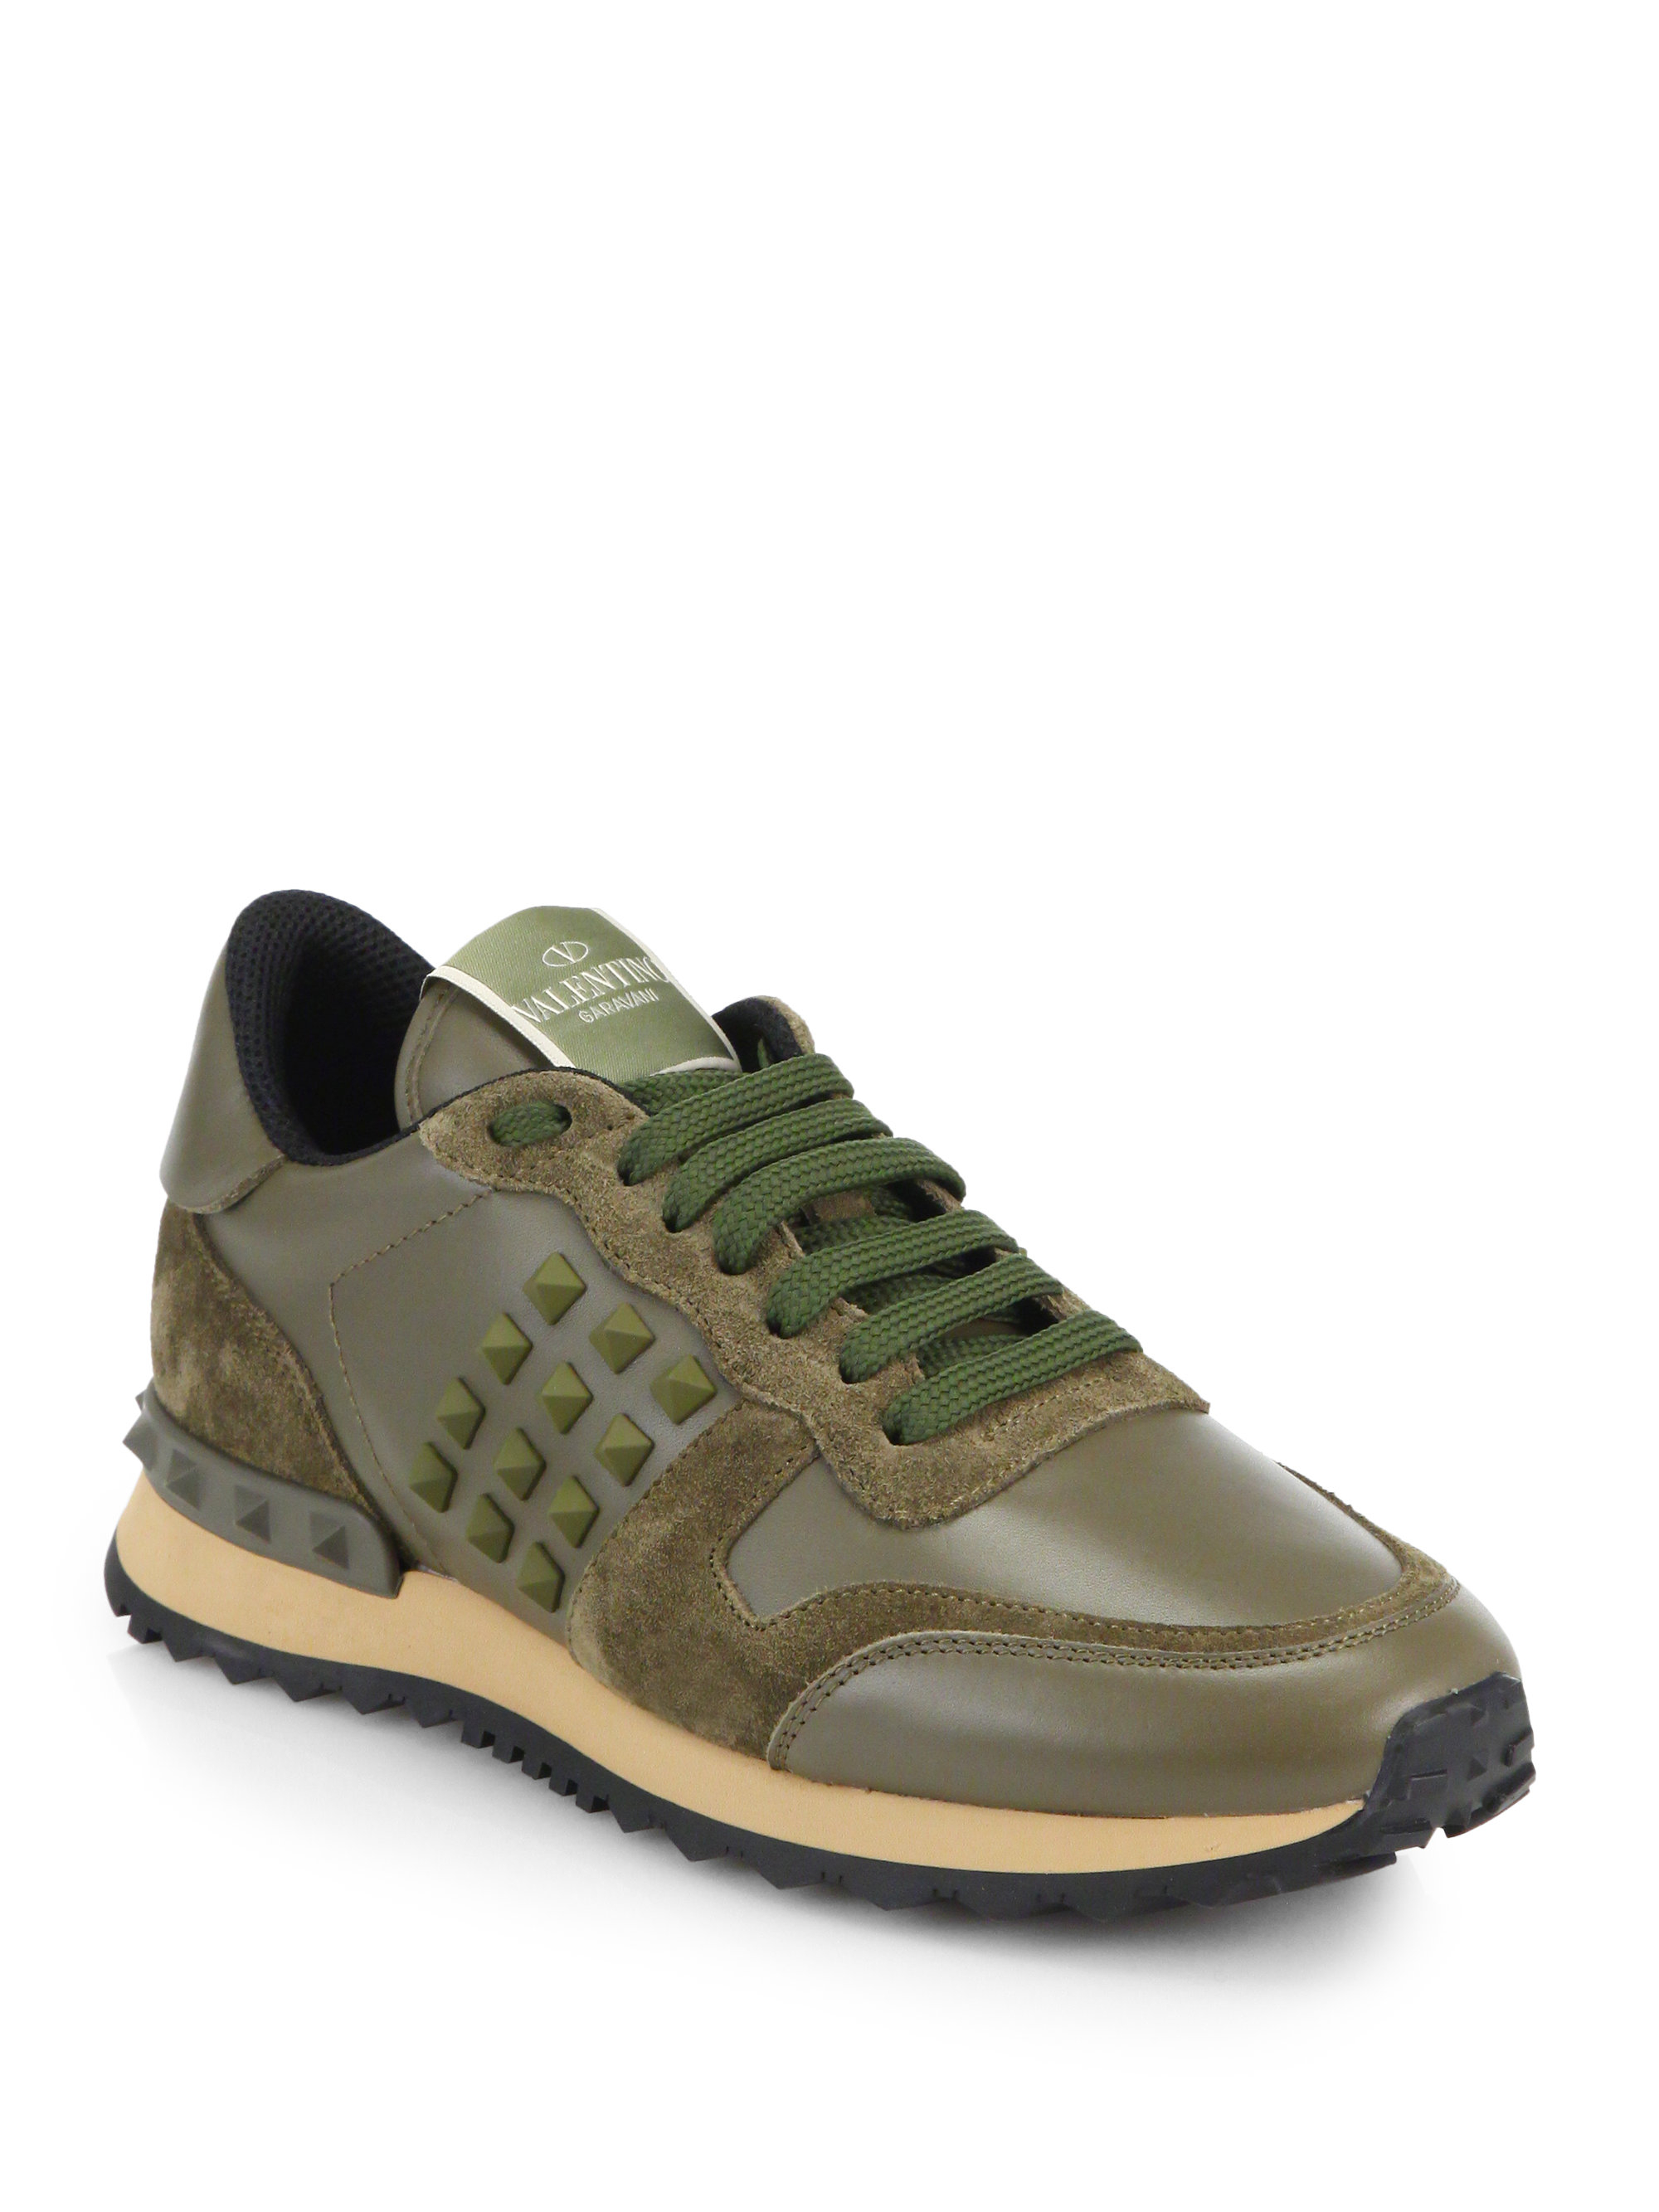 valentino rockstud leather suede sneakers in green for men lyst. Black Bedroom Furniture Sets. Home Design Ideas